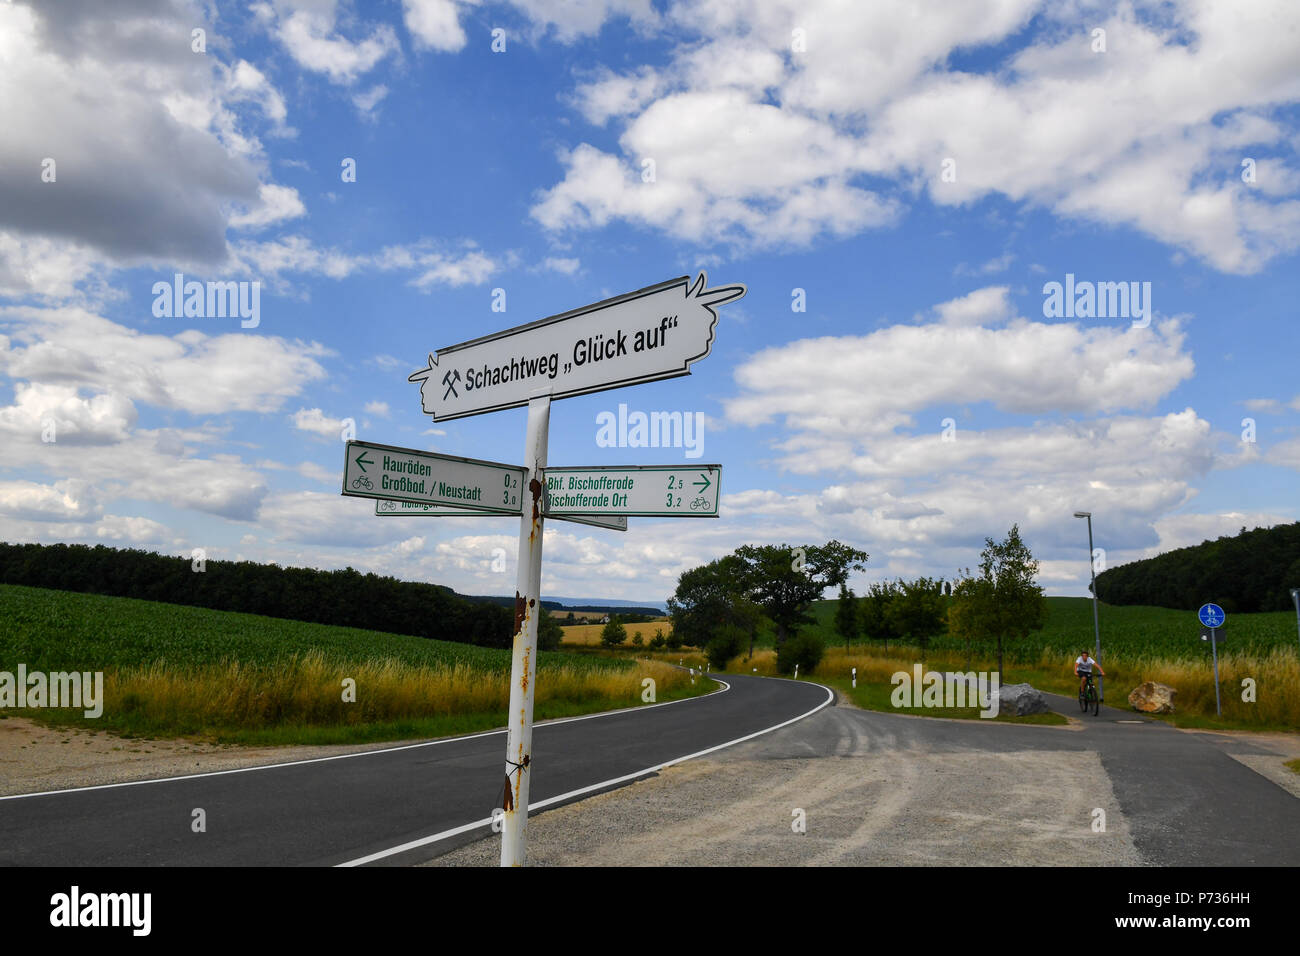 Bischofferode, Deutschland. 27th June, 2018. 27.06.2018, Bischofferode, Thuringen: A signpost for the Schucktweg 'Gluck auf' is signposted on a street. Protests of the miners at the close of the early 1990s made the work known nationwide. (to dpa 'hunger strike! - Search for clues 25 years after the Kali rebellion' from 28.06.2018) Credit: Jens Kalaene/dpa central image/dpa | usage worldwide/dpa/Alamy Live News - Stock Image